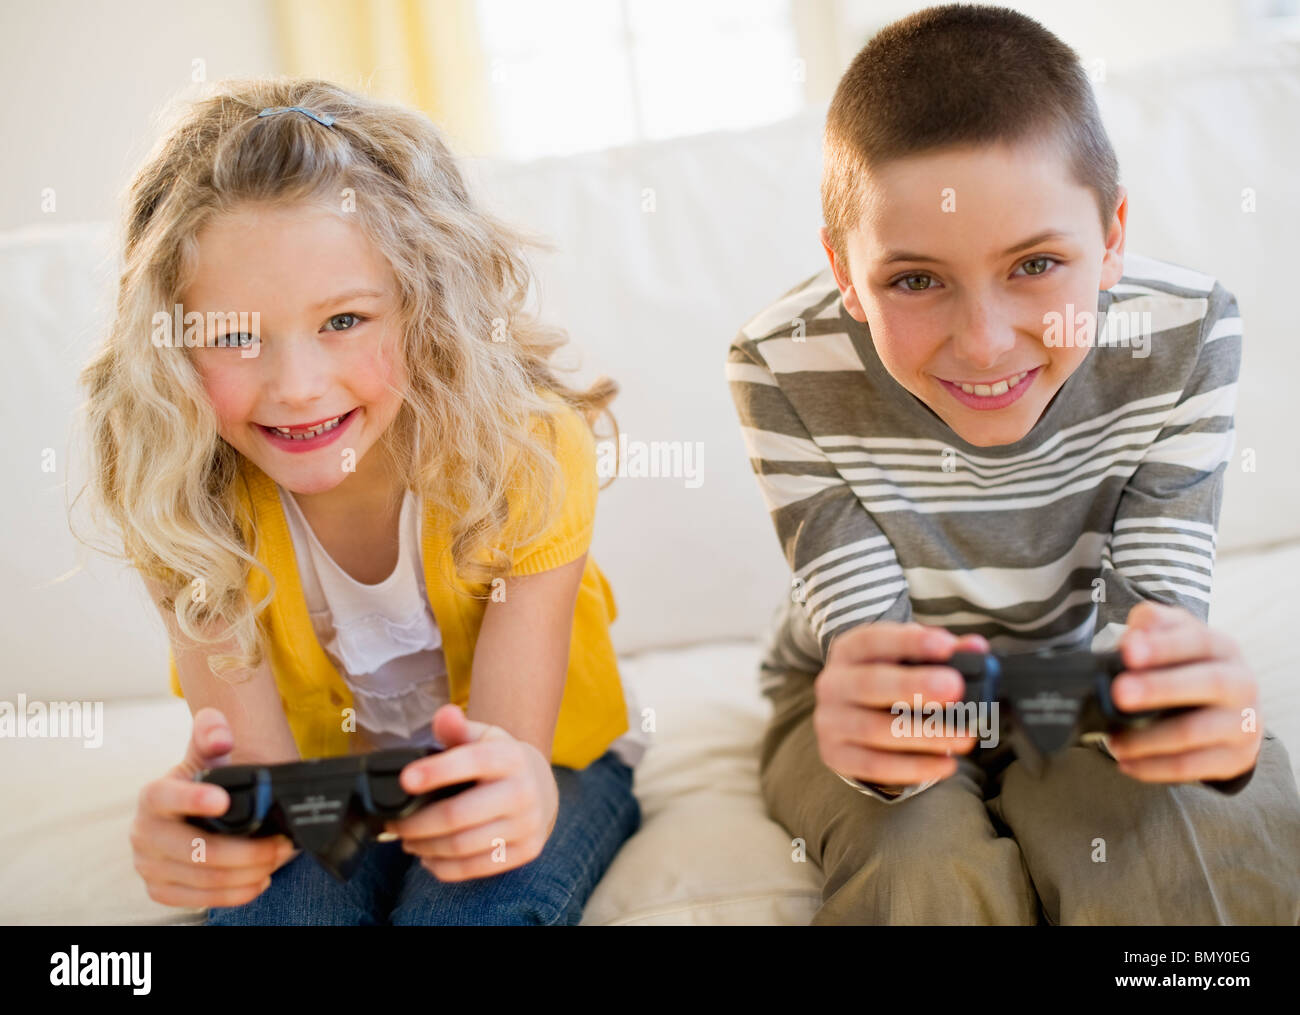 Siblings playing video game Photo Stock